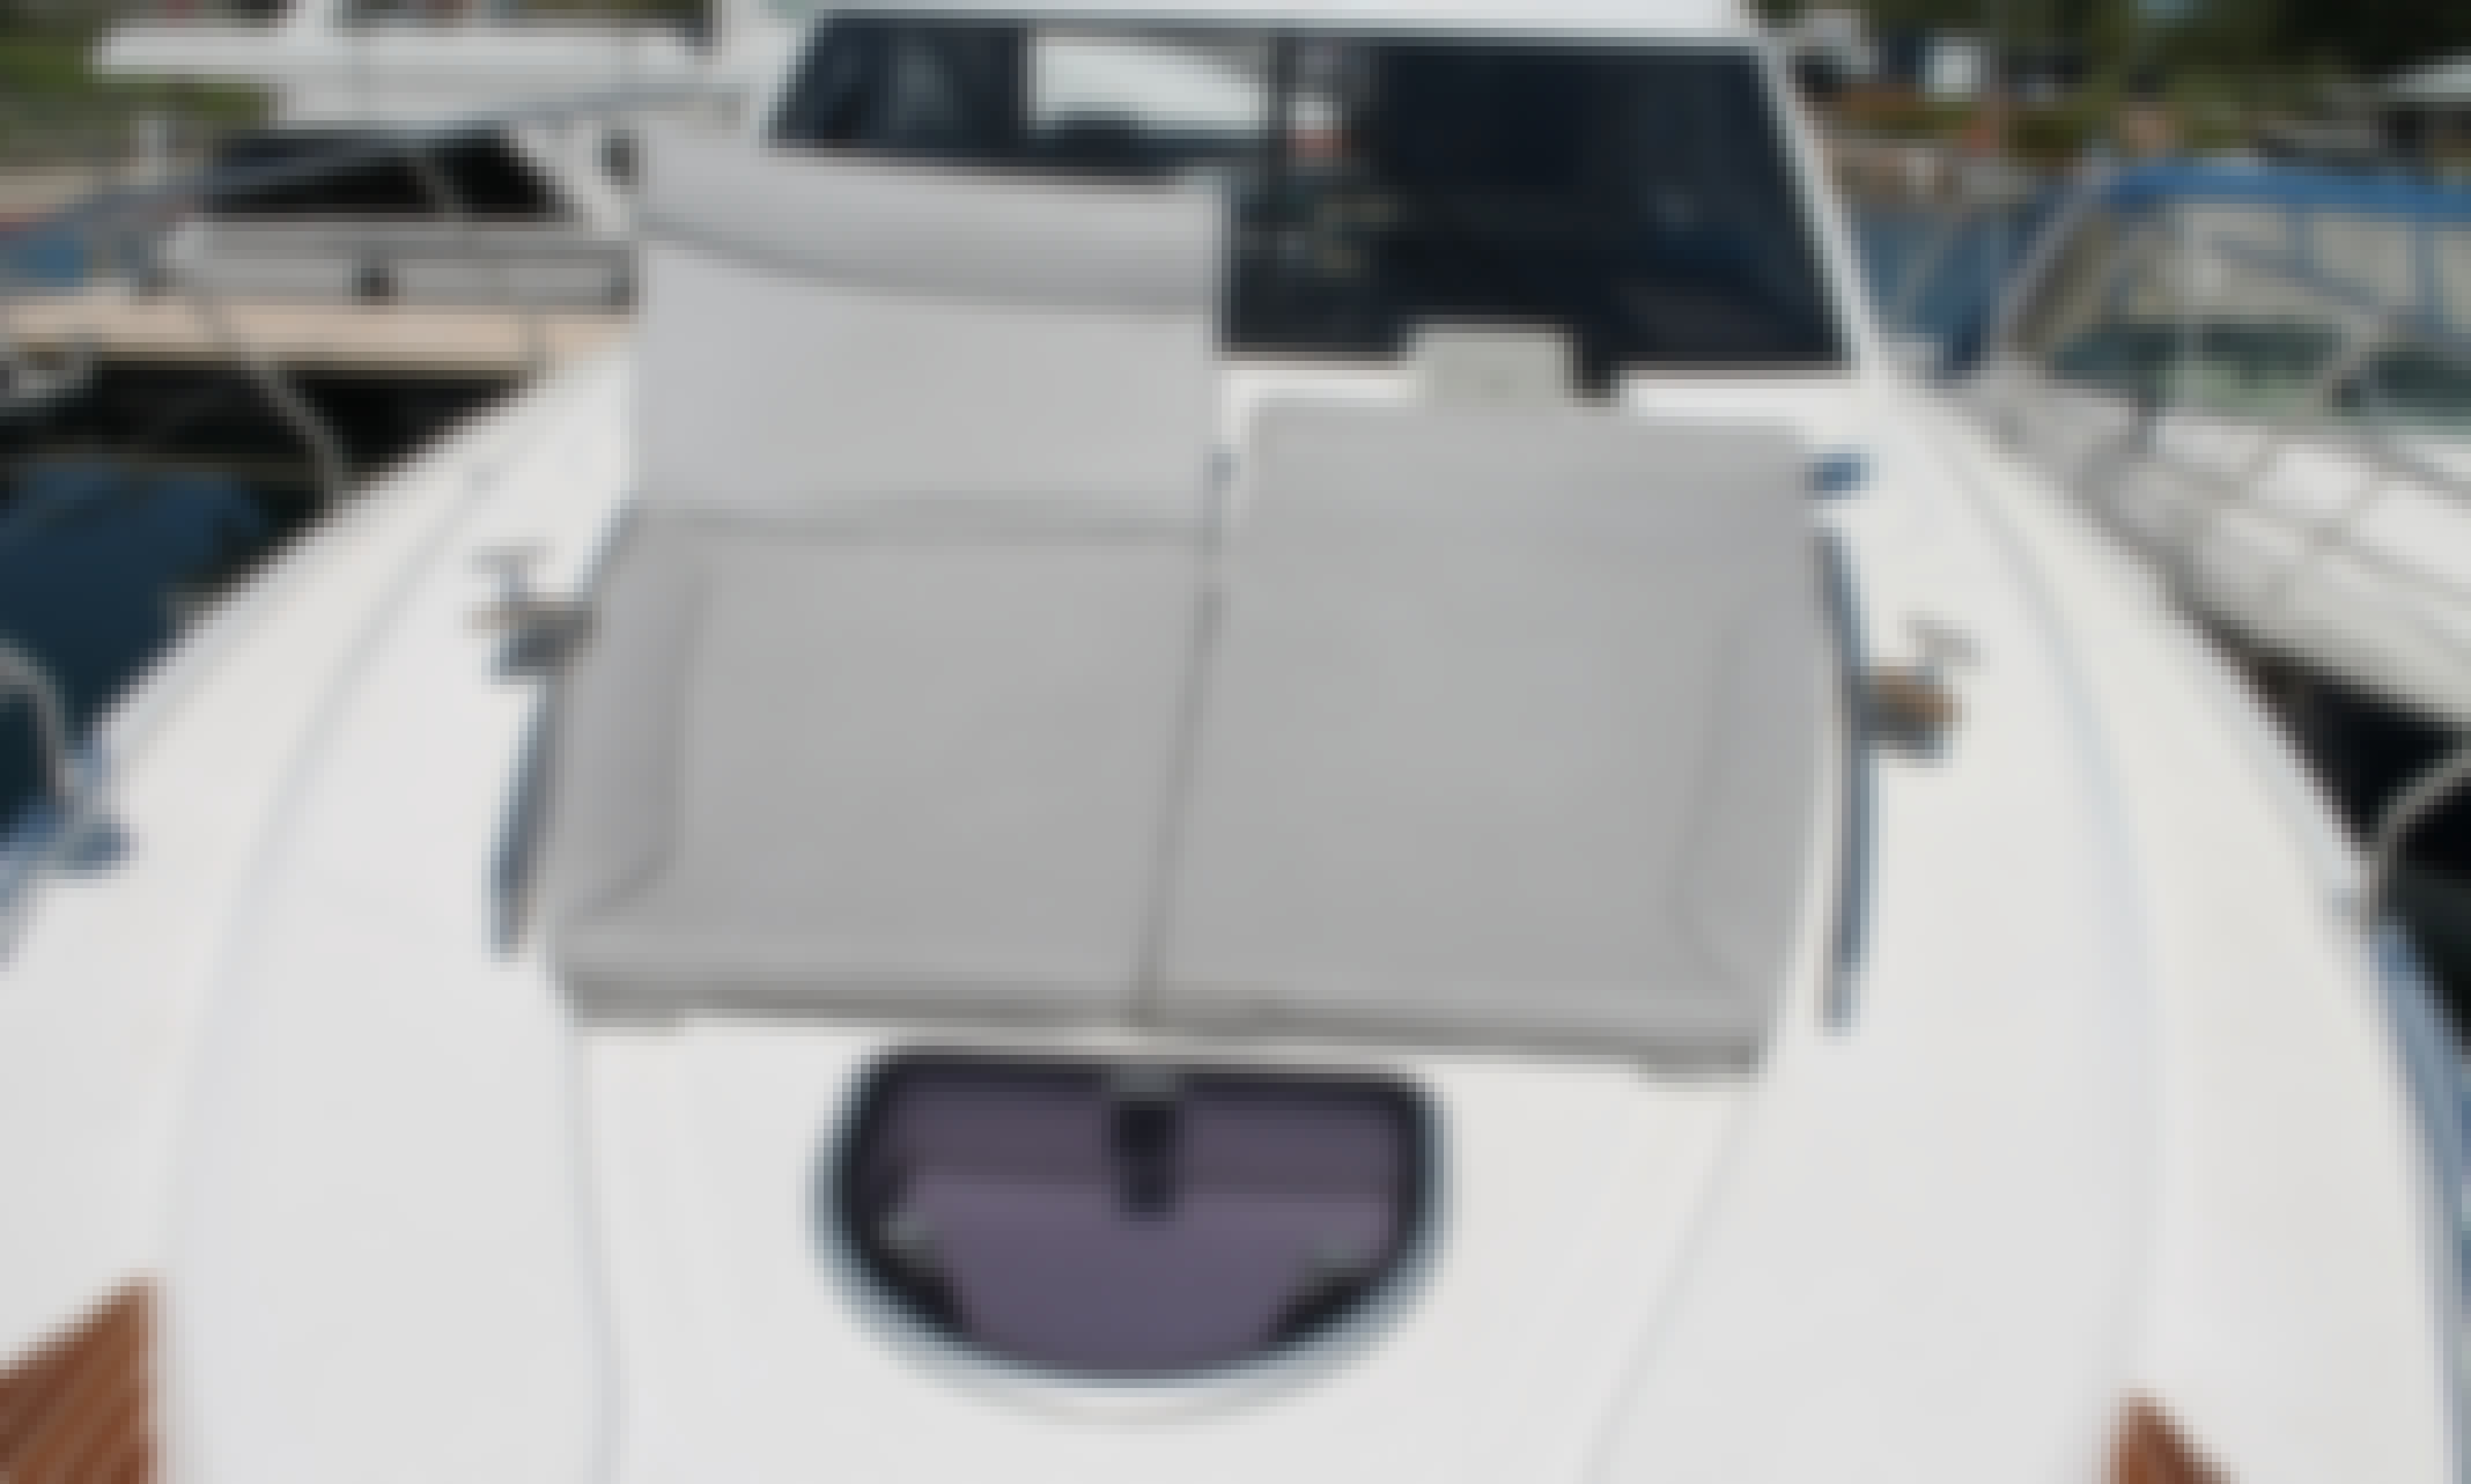 Beneteau GT49 Modern Luxury Yacht - Rental includes fuel and Captain!